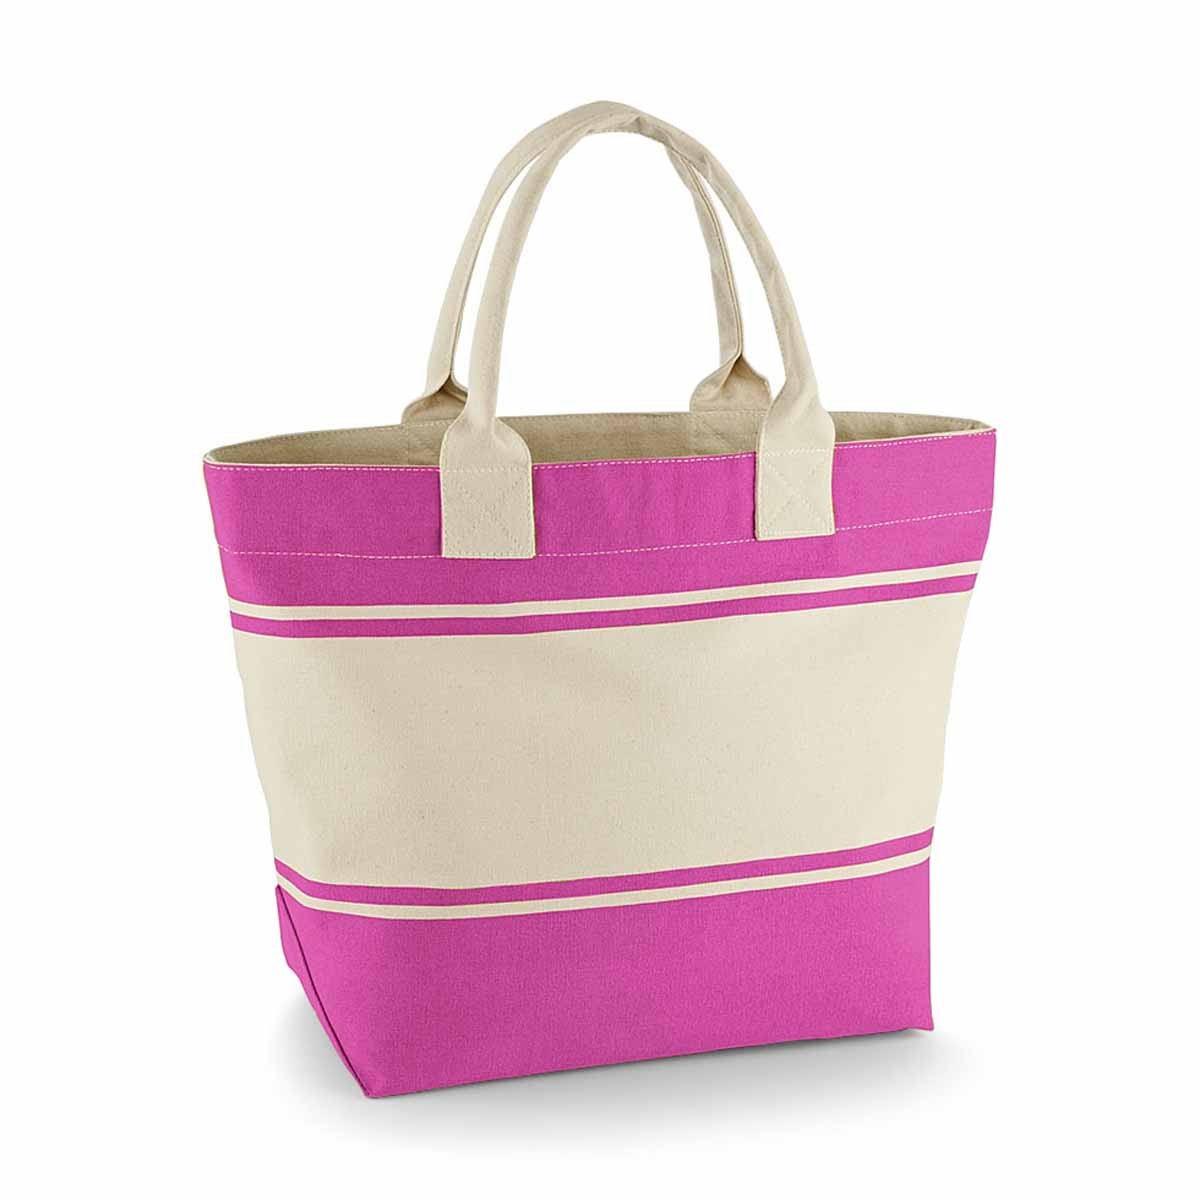 Sac cabas shopping ou plage en toile - QD26 - rose fuschia